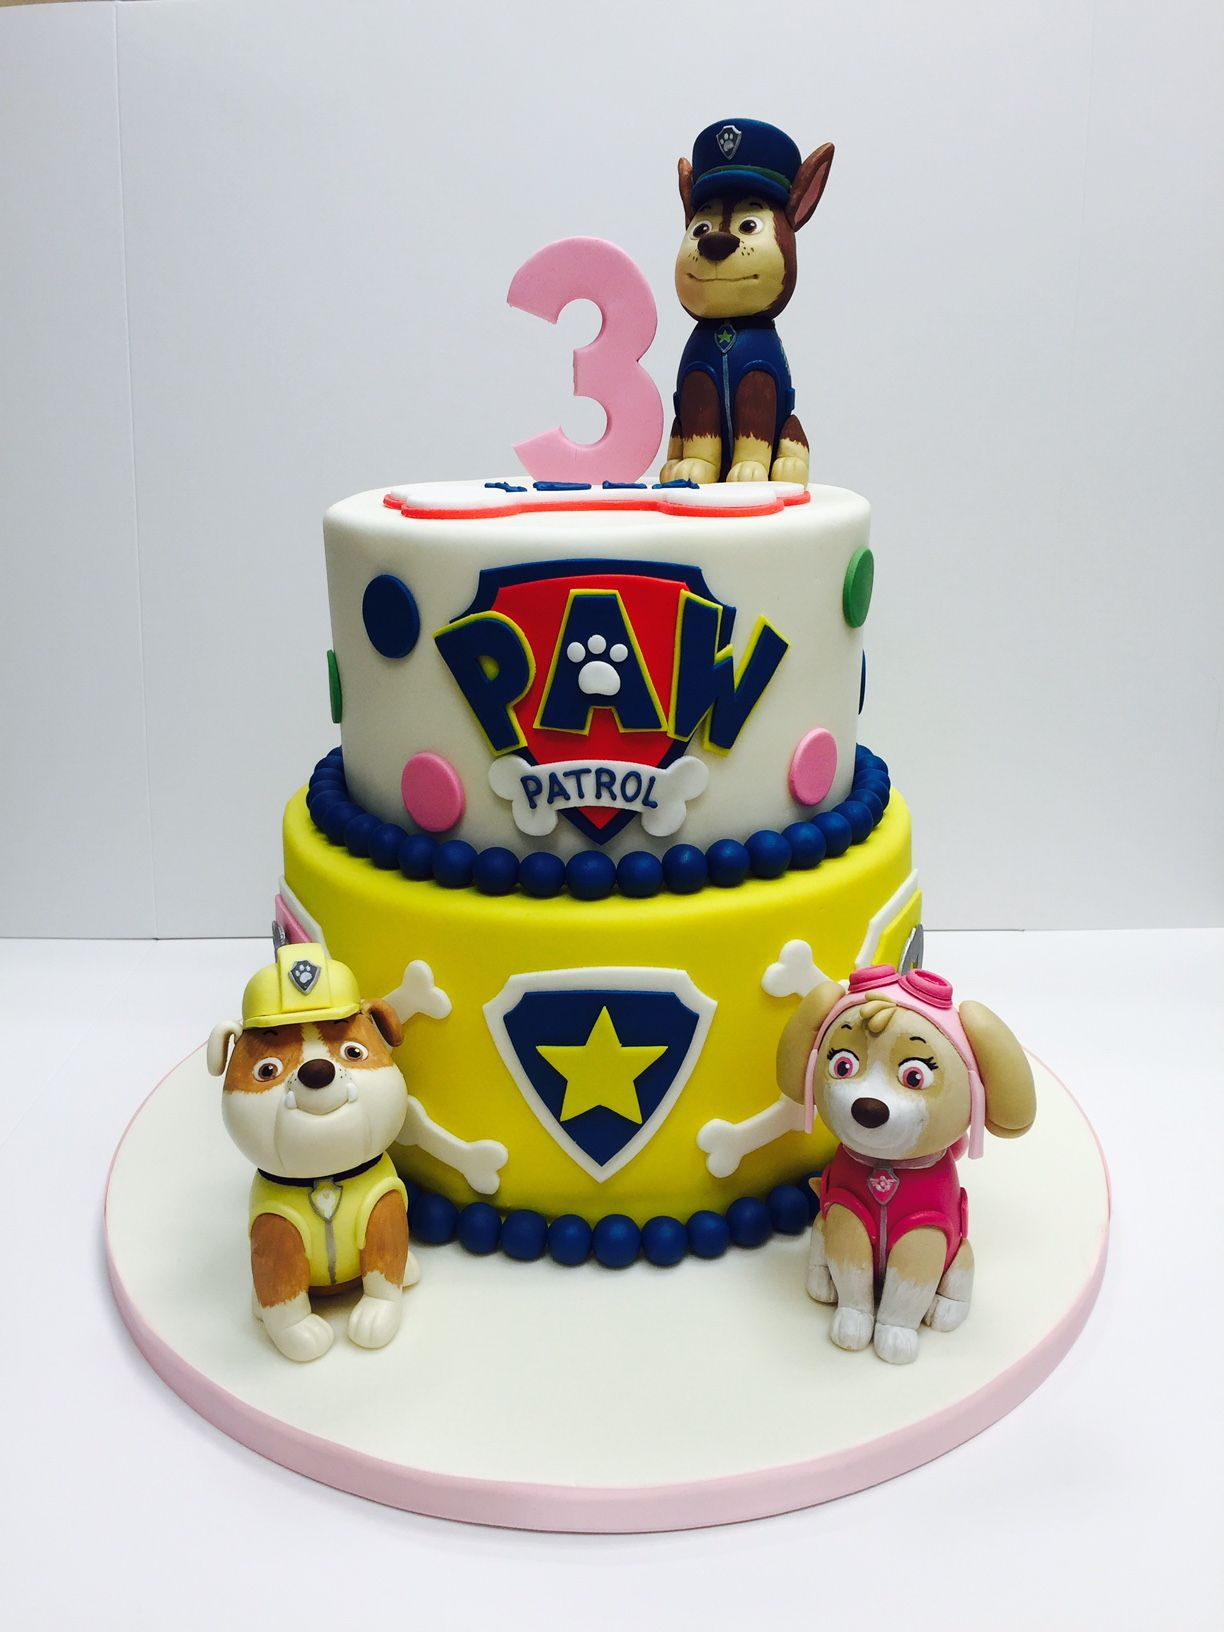 Birthday Cakes Images Toddler Kids Childrens In London Paw Patrol Cake White And Yellow Color Combination Amazing